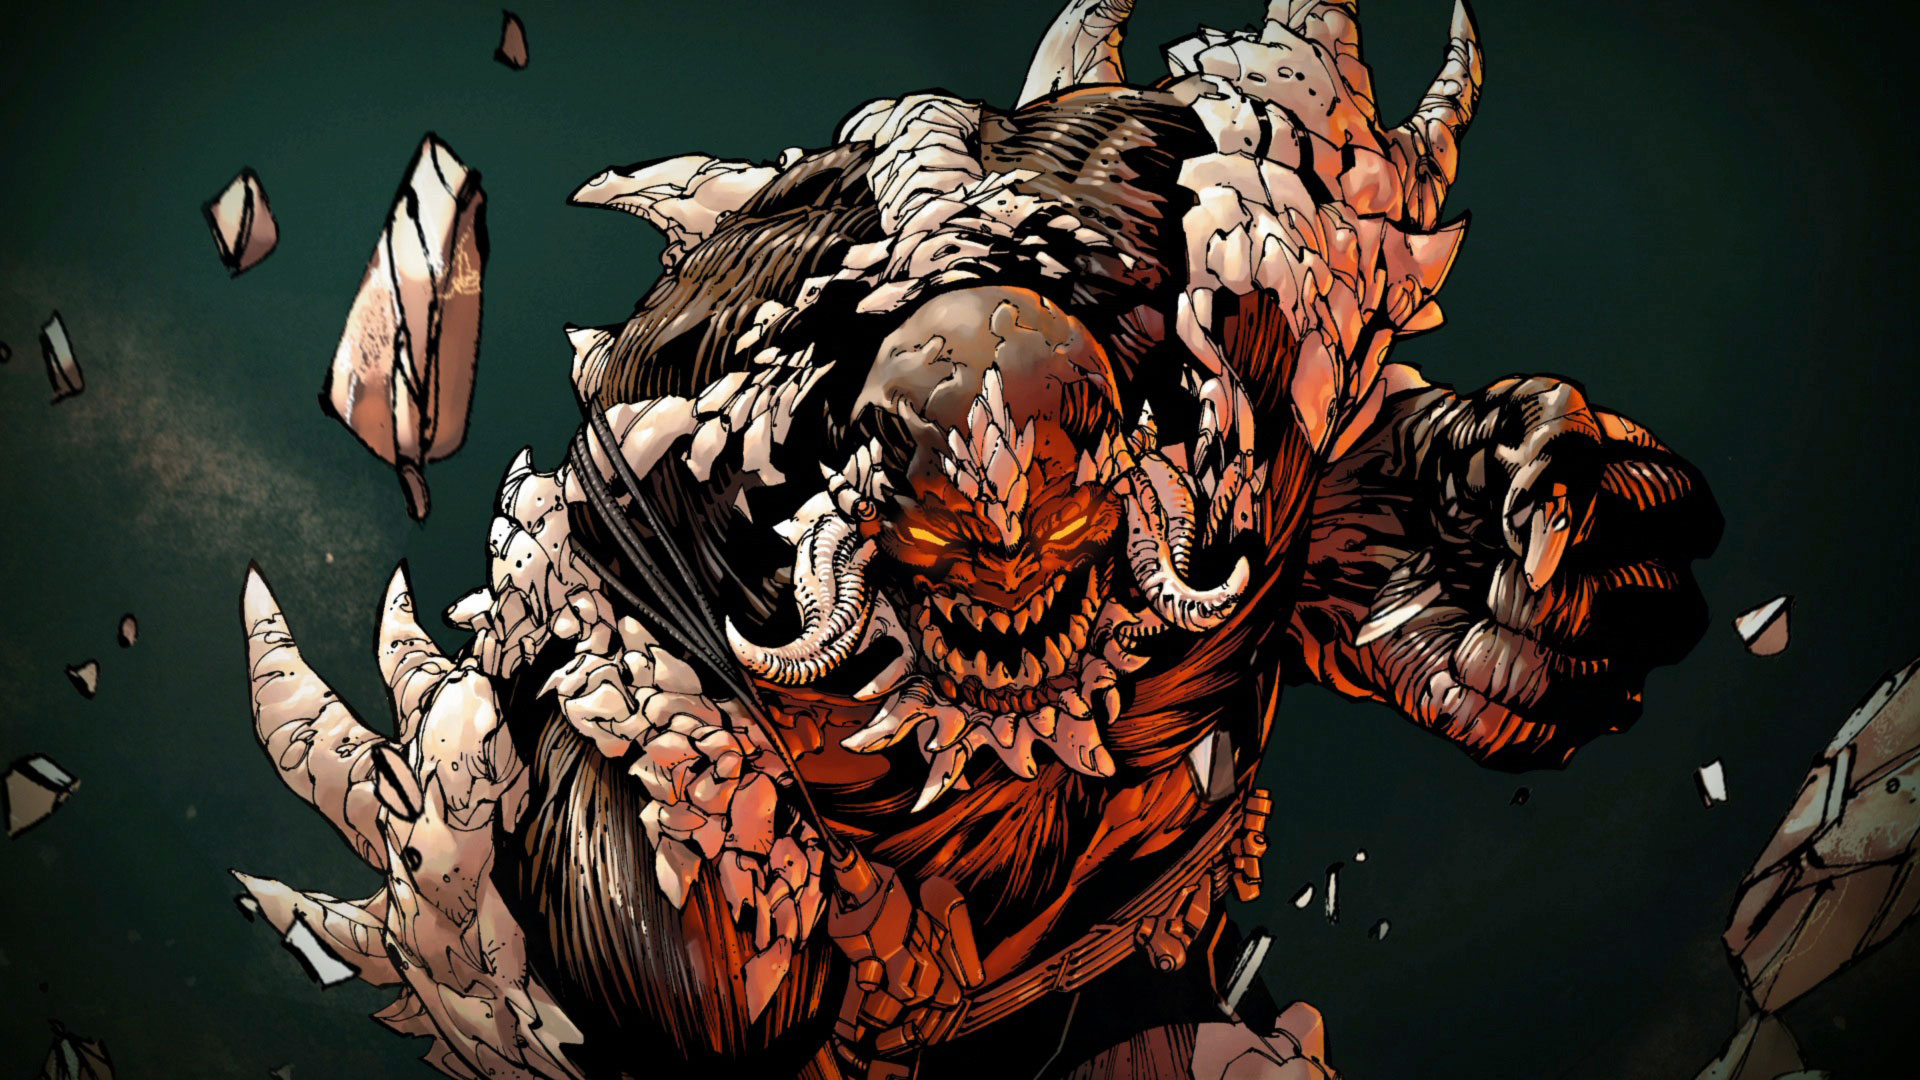 Top 20 Most Powerful Overpowered DC Characters 19 Doomsday